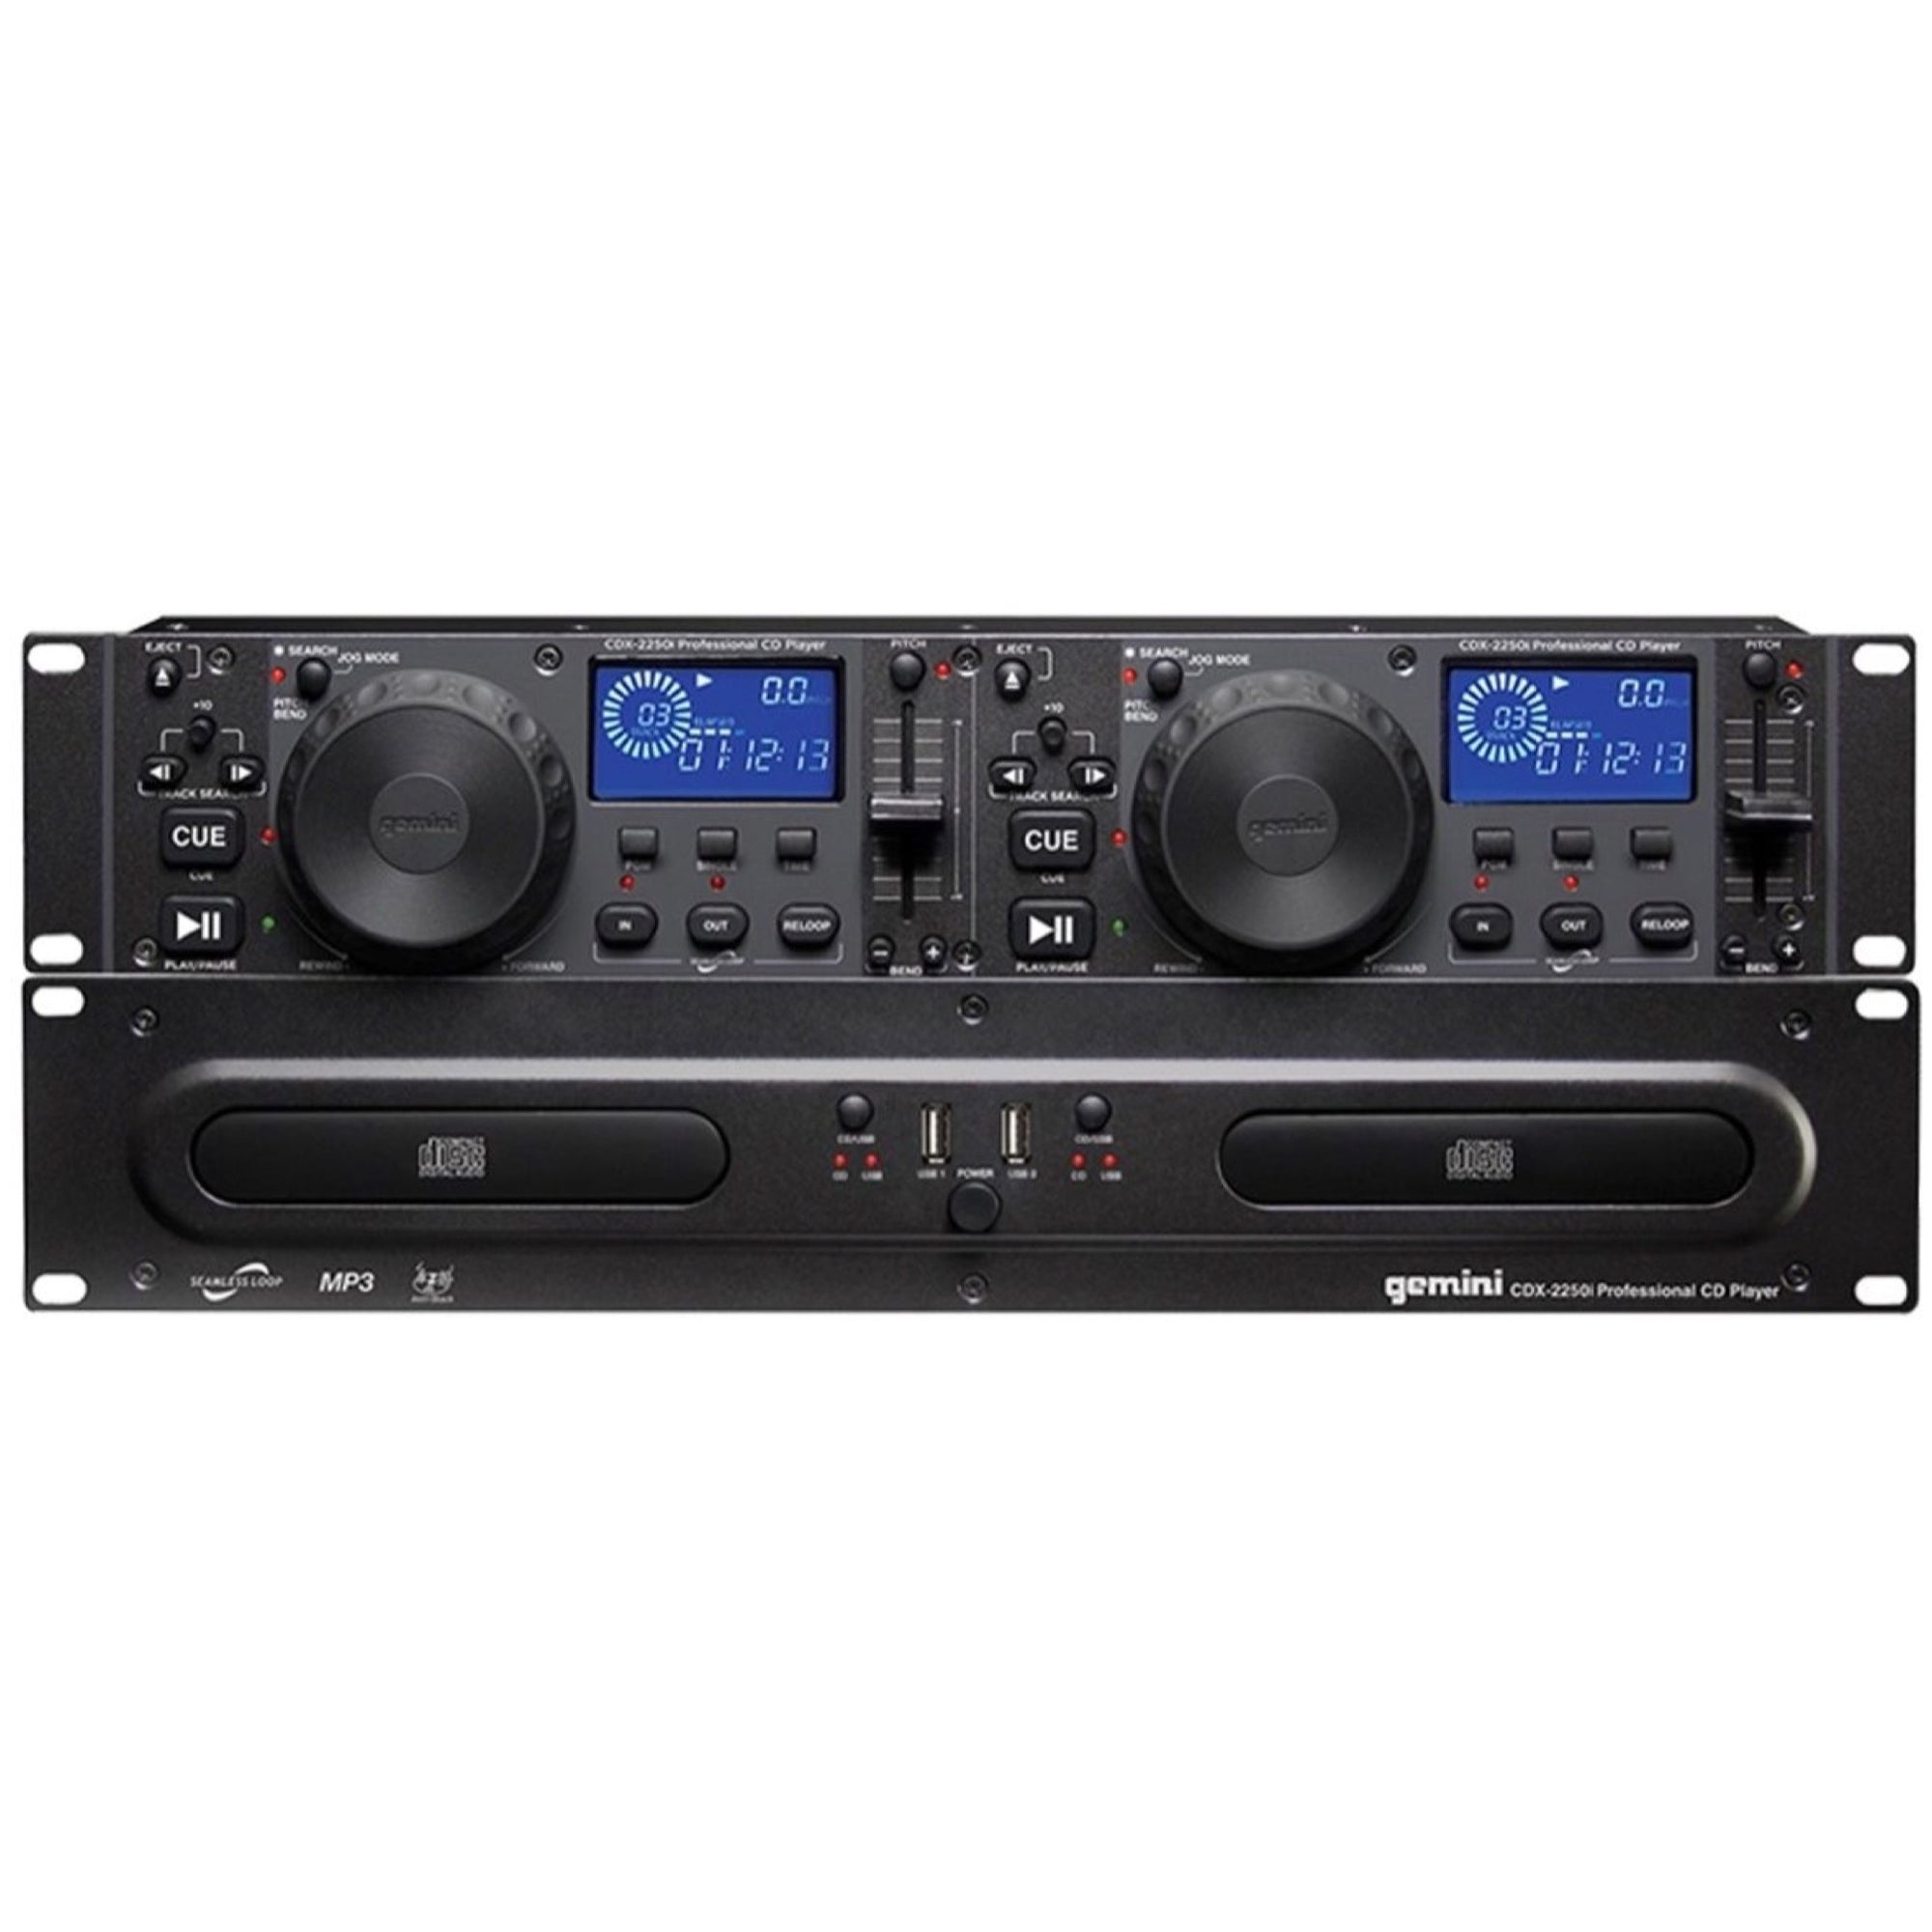 Gemini CDX-2250i Professional Rackmount Dual CD Player